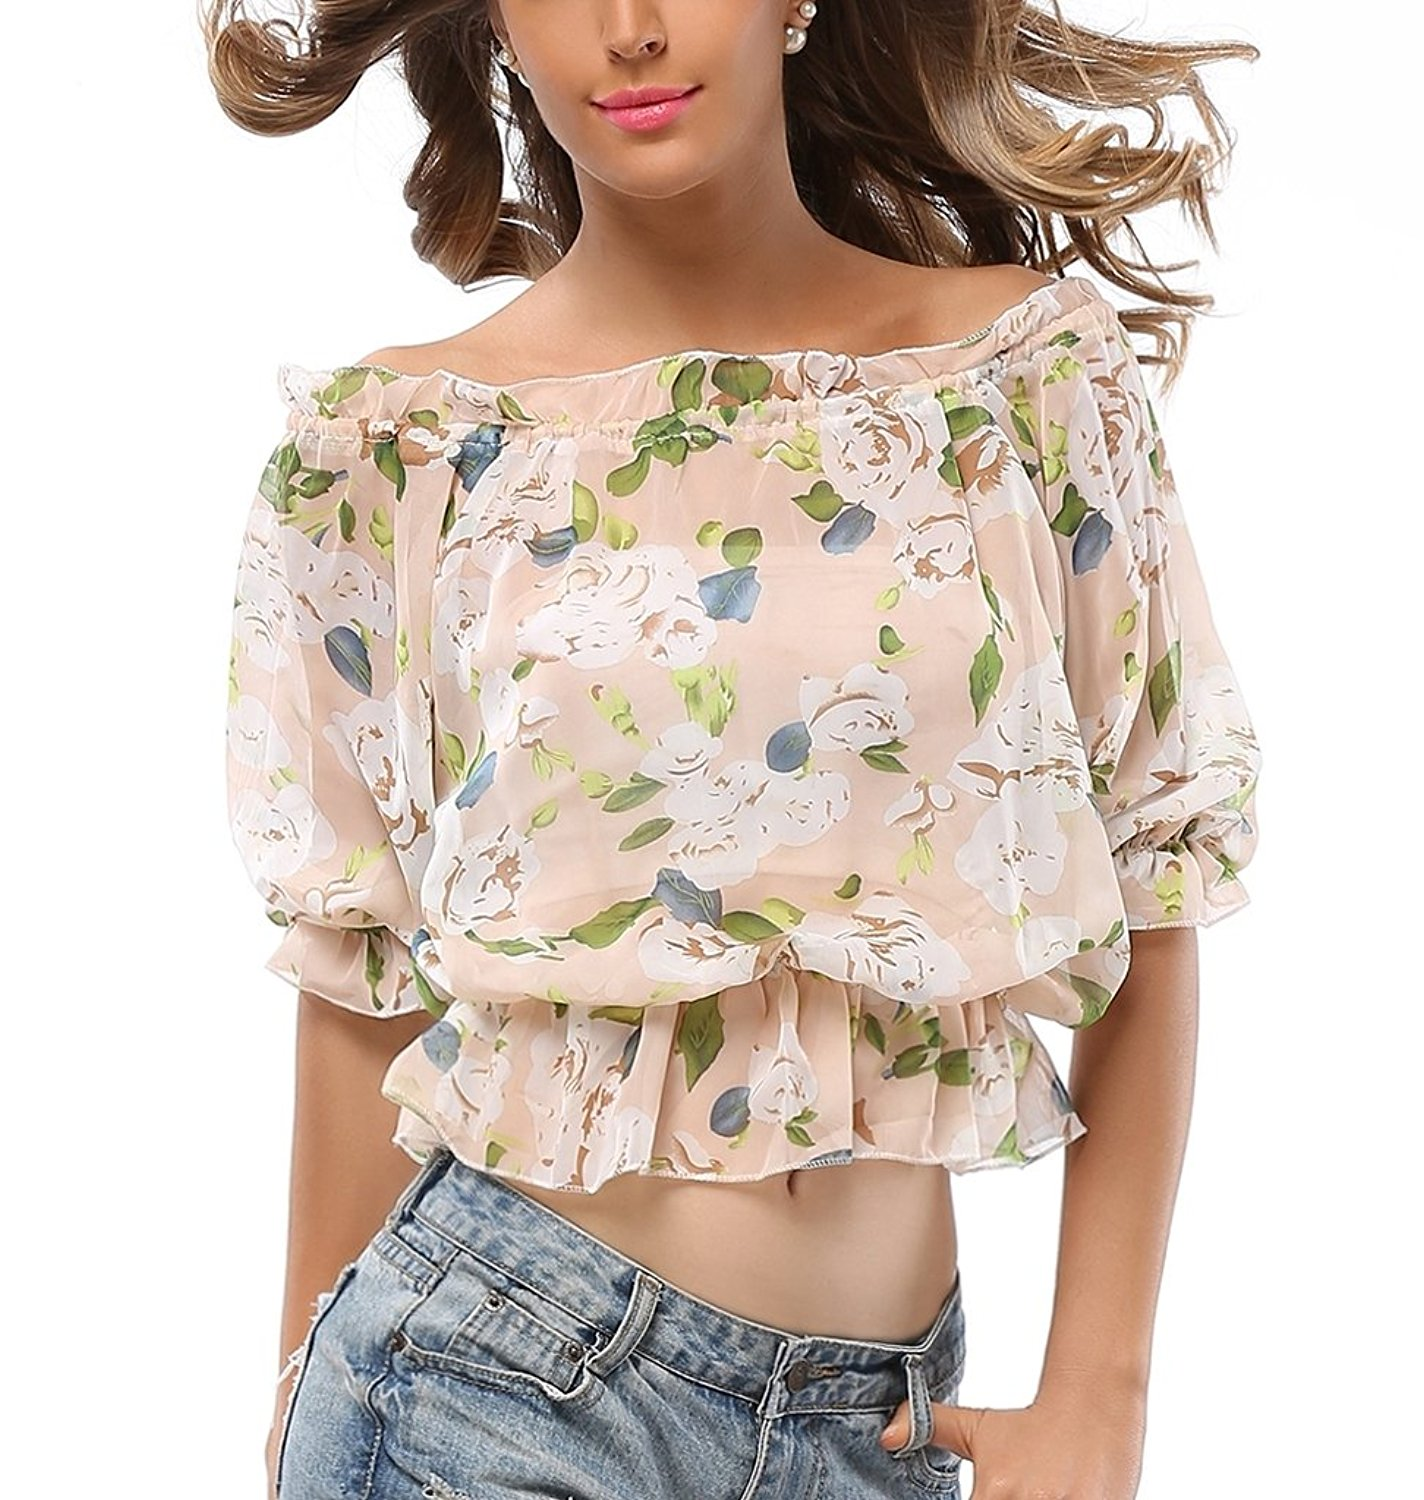 1031221224 Get Quotations · Fortuning s JDS Floral Ruffled Off-shoulder Crops Tops  with Sheer Chiffon Elastic Neckline   Cuffs